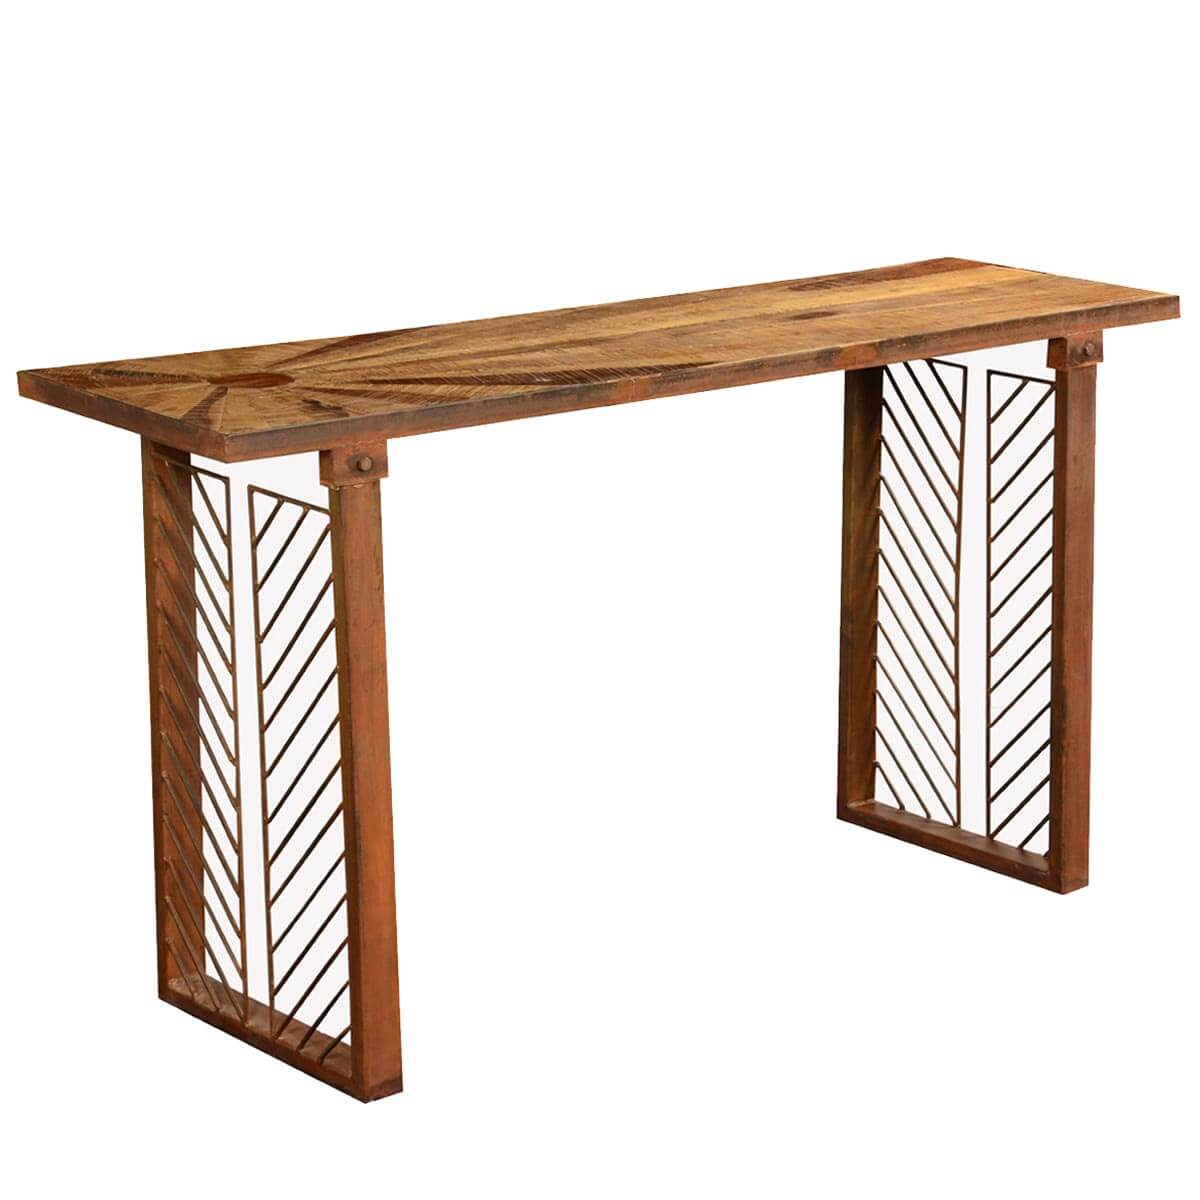 Contemporary sunburst reclaimed wood iron hall console table for Hall console table